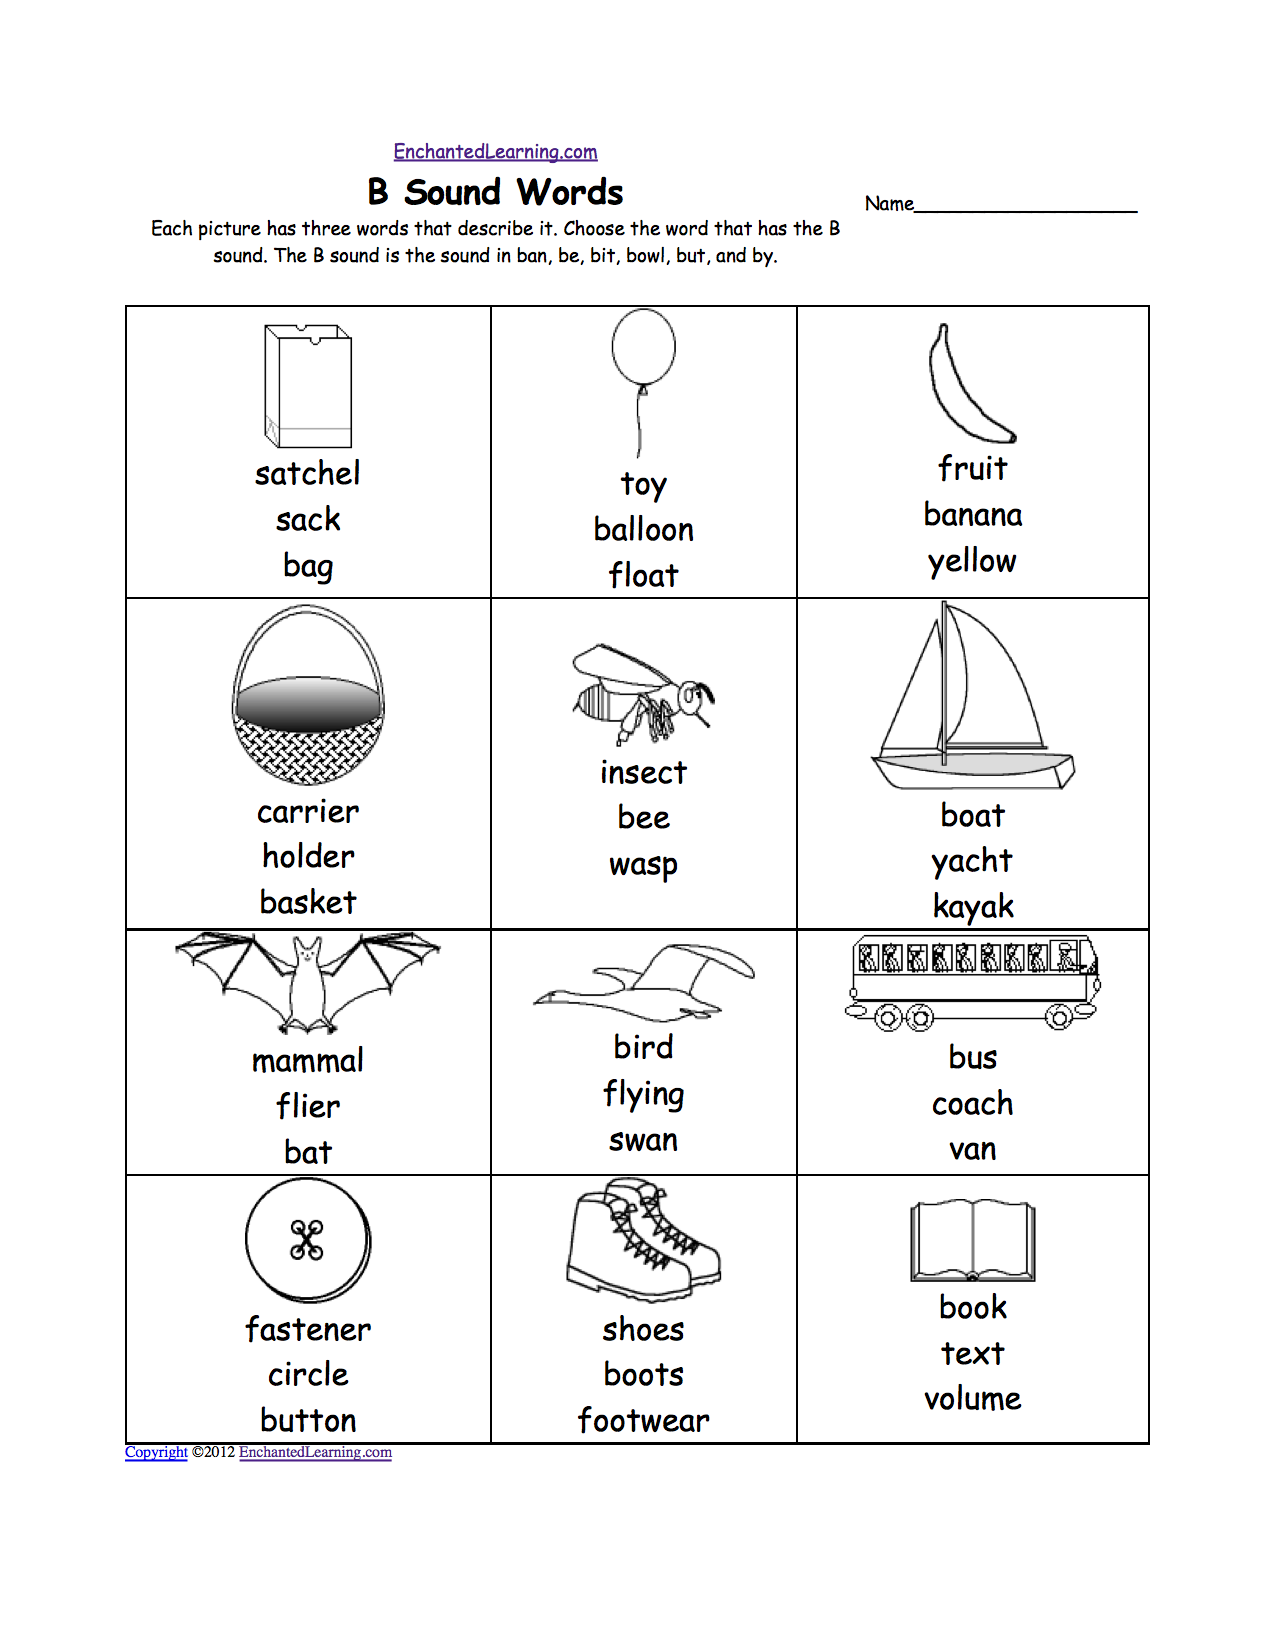 Proatmealus  Terrific Phonics Worksheets Multiple Choice Worksheets To Print  With Handsome Quotbquot Sound Phonics Worksheet Multiple Choice Each Picture Has Three Words That Describe It Choose The Word That Has A Quotbquot Sound The Quotbquot Sound Is The Sound  With Easy On The Eye Worksheets On Division For Grade  Also Fractions Decimals And Percentages Worksheets Ks In Addition Compound Word Worksheets Rd Grade And Array Worksheets Grade  As Well As Liquid Solid Gas Worksheet Additionally Kids Maze Worksheets From Enchantedlearningcom With Proatmealus  Handsome Phonics Worksheets Multiple Choice Worksheets To Print  With Easy On The Eye Quotbquot Sound Phonics Worksheet Multiple Choice Each Picture Has Three Words That Describe It Choose The Word That Has A Quotbquot Sound The Quotbquot Sound Is The Sound  And Terrific Worksheets On Division For Grade  Also Fractions Decimals And Percentages Worksheets Ks In Addition Compound Word Worksheets Rd Grade From Enchantedlearningcom